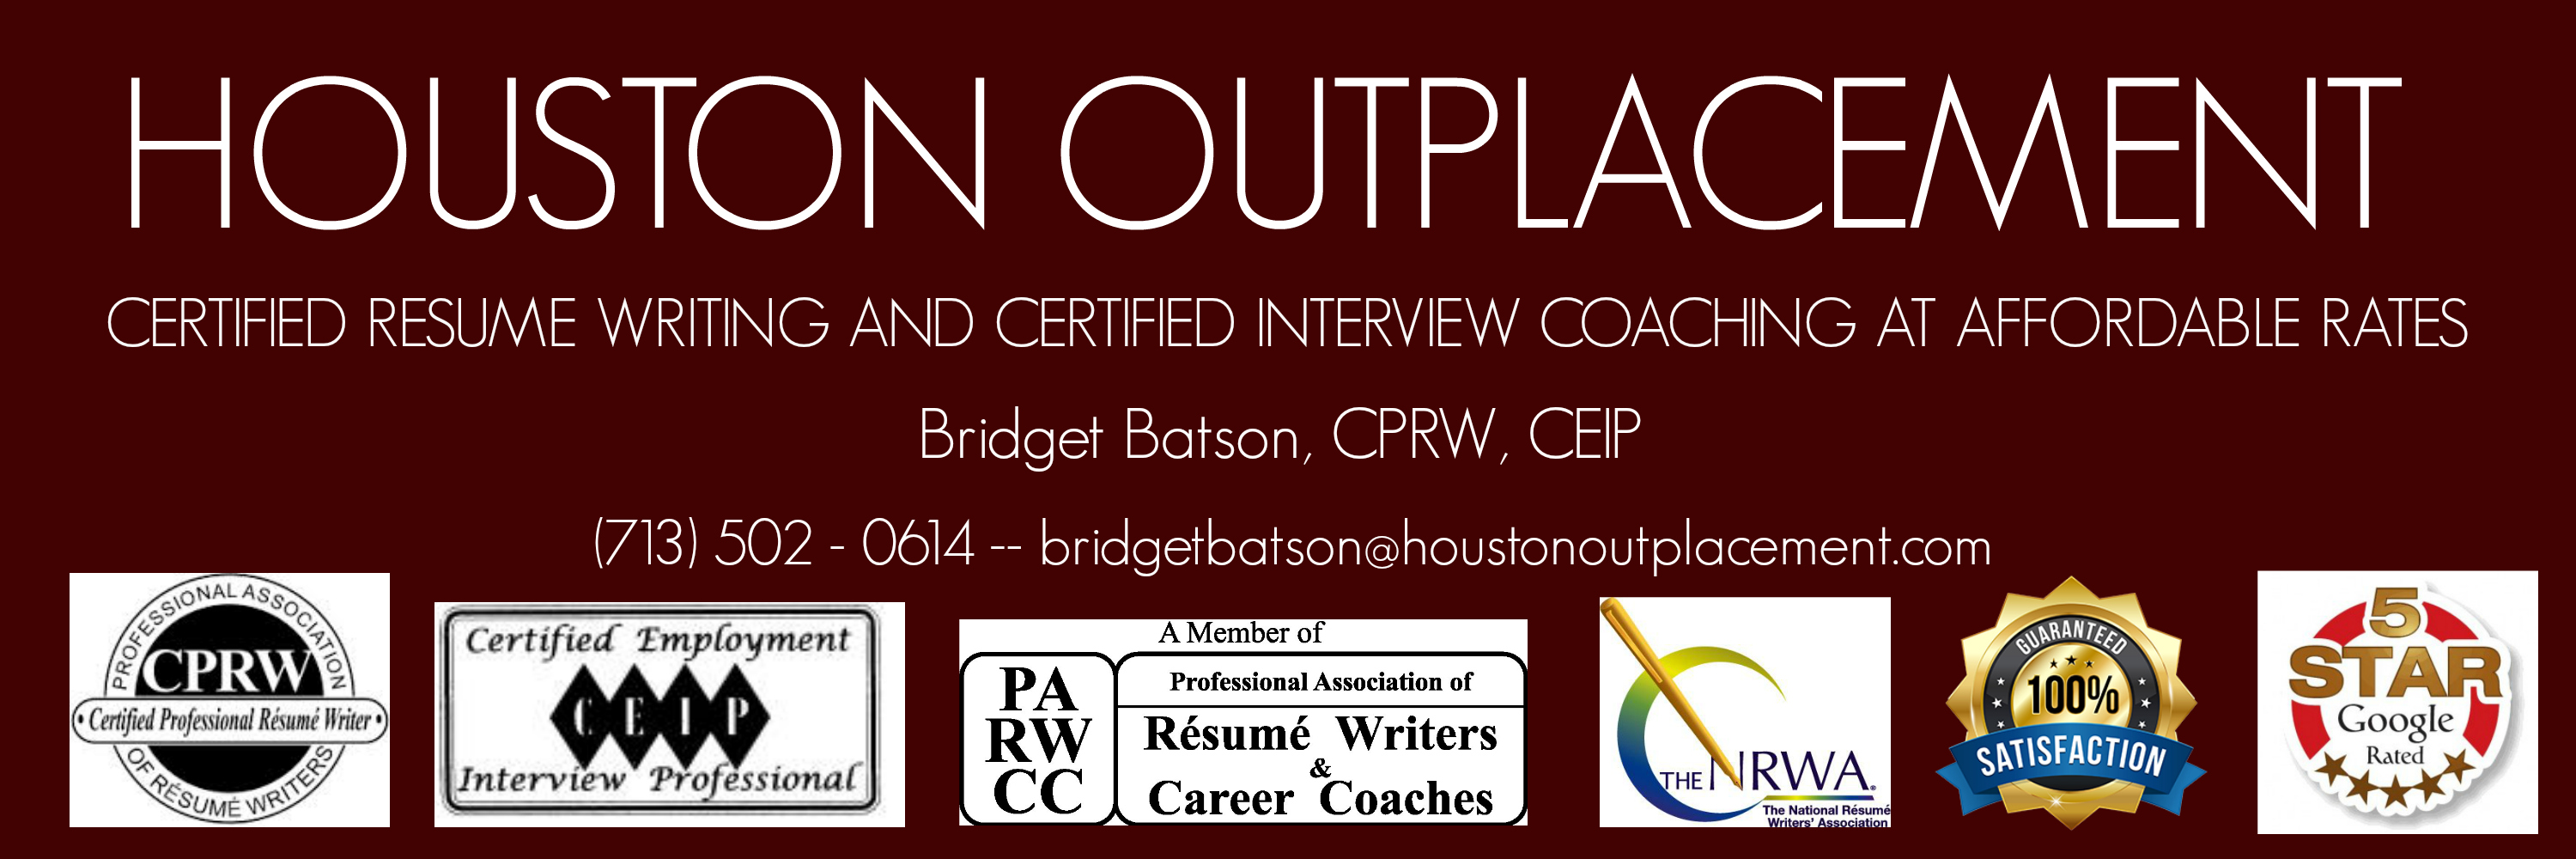 houston outplacement certified resume writing and interview